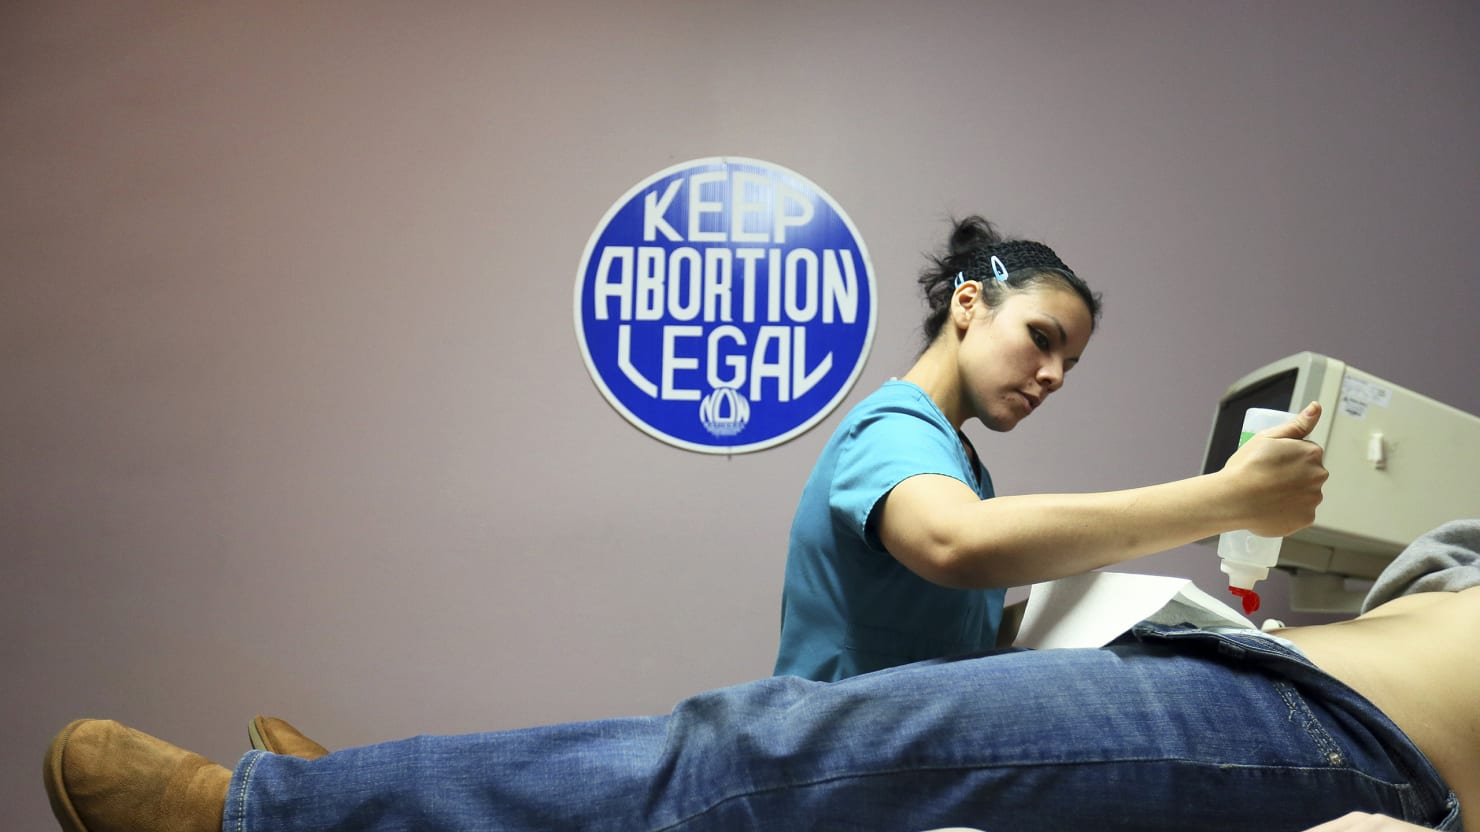 Abortion Complications Are Rare, No Matter What the Right Says